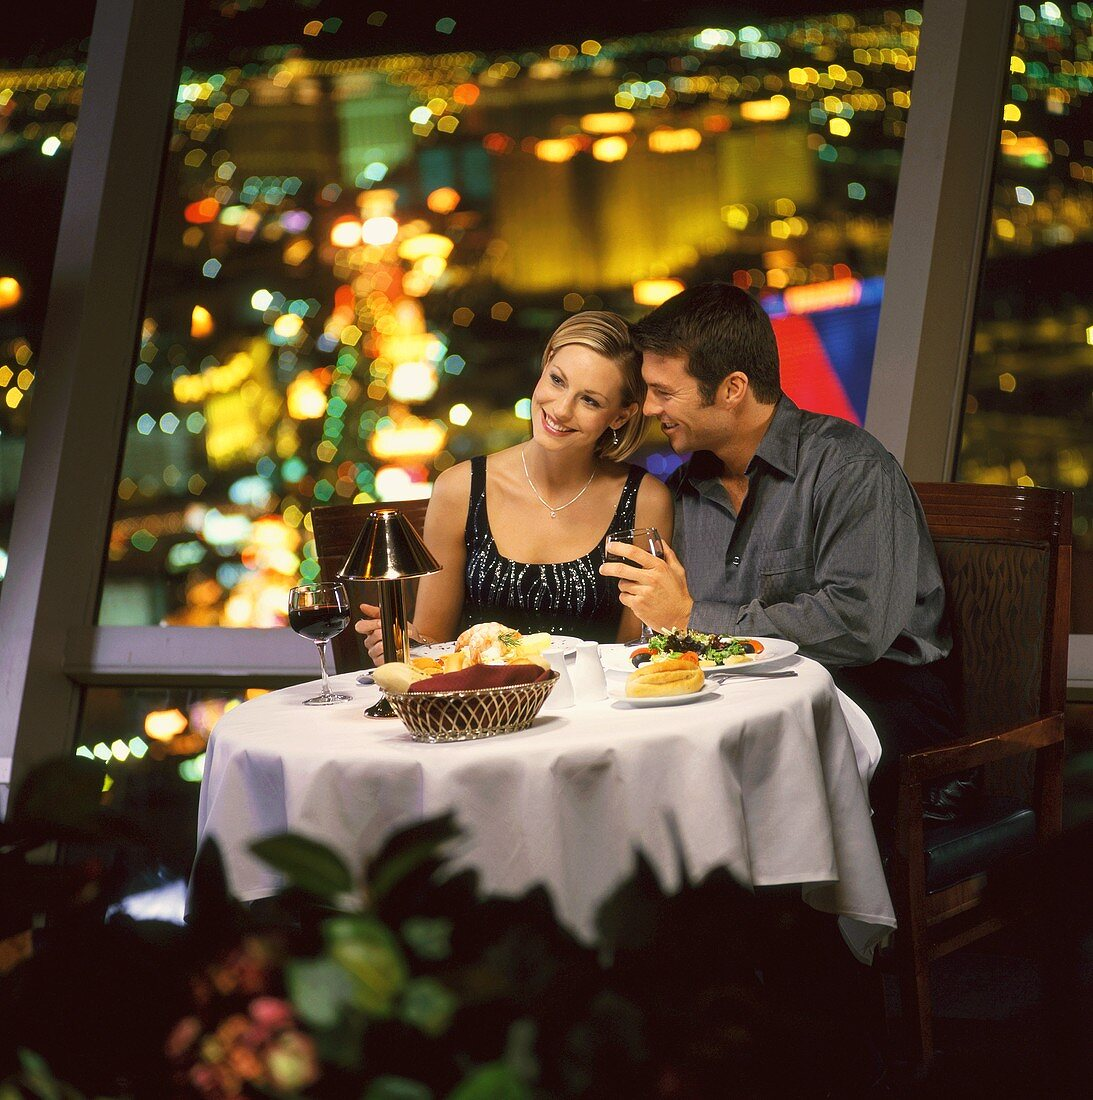 Couple Dining in Restaurant with City Night View